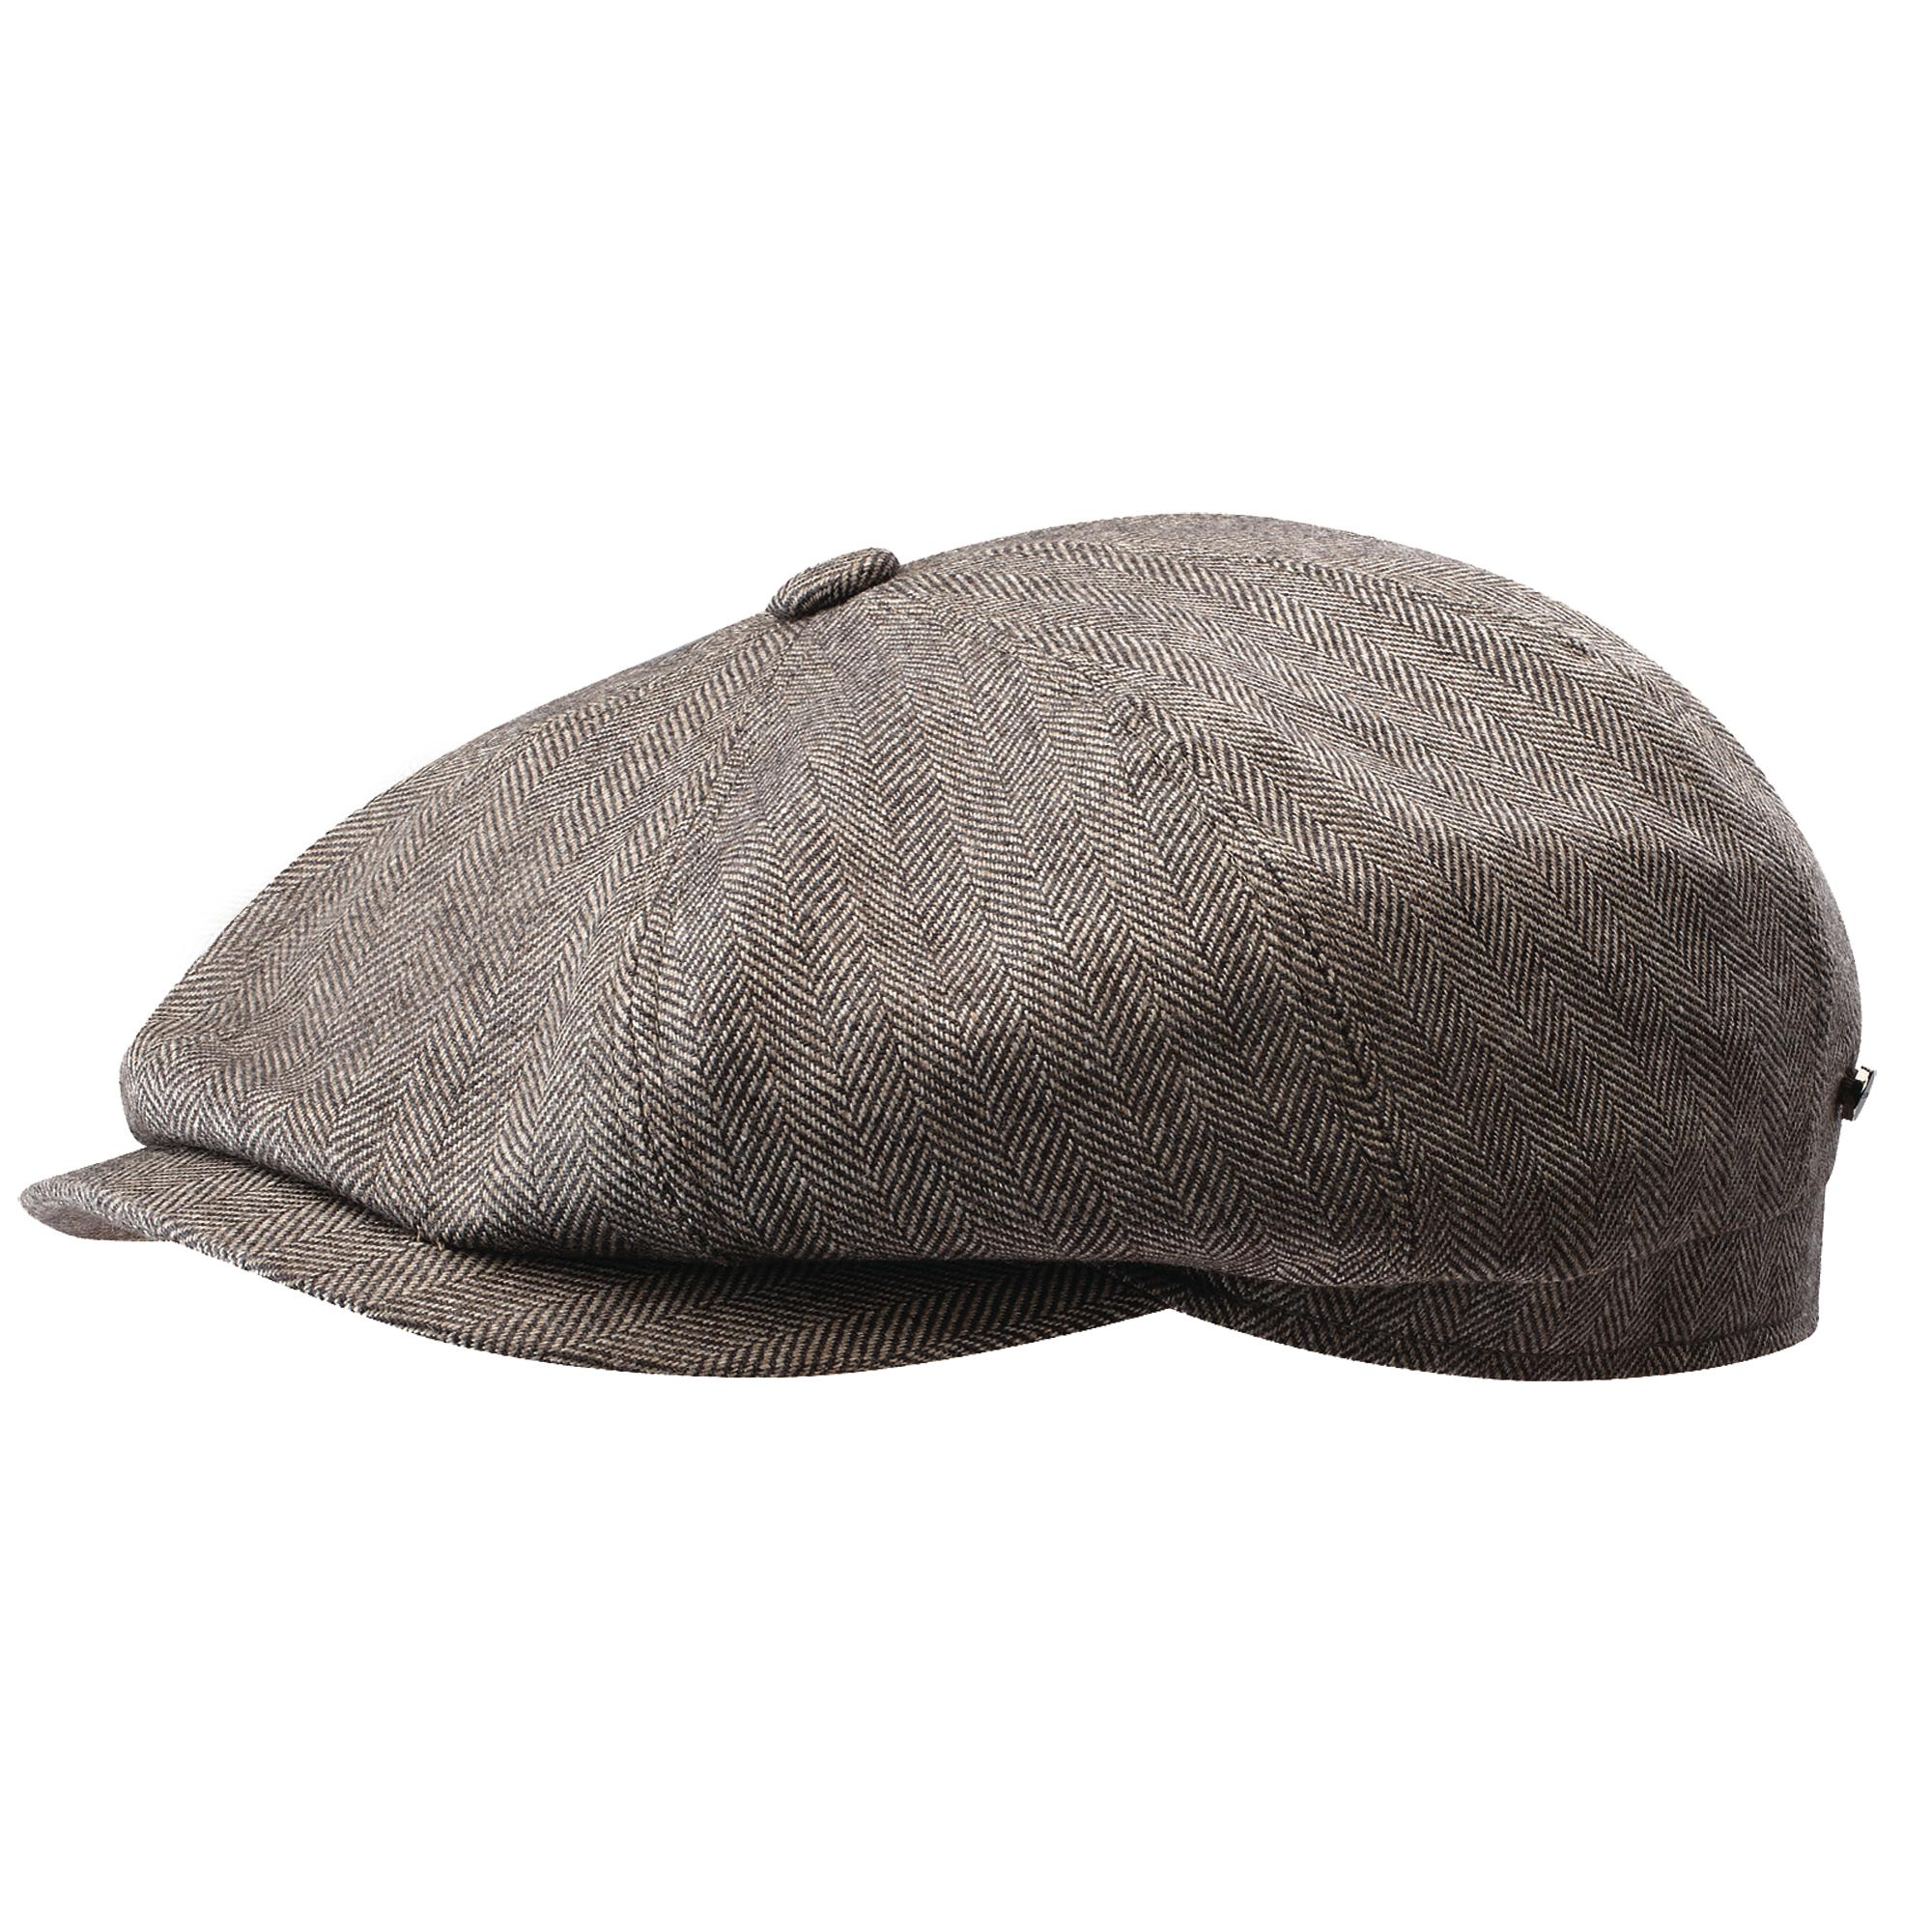 Peaky Blinders Styles Men Hat Newsboy Paper boy Baker boy Cap Grab the Bargain